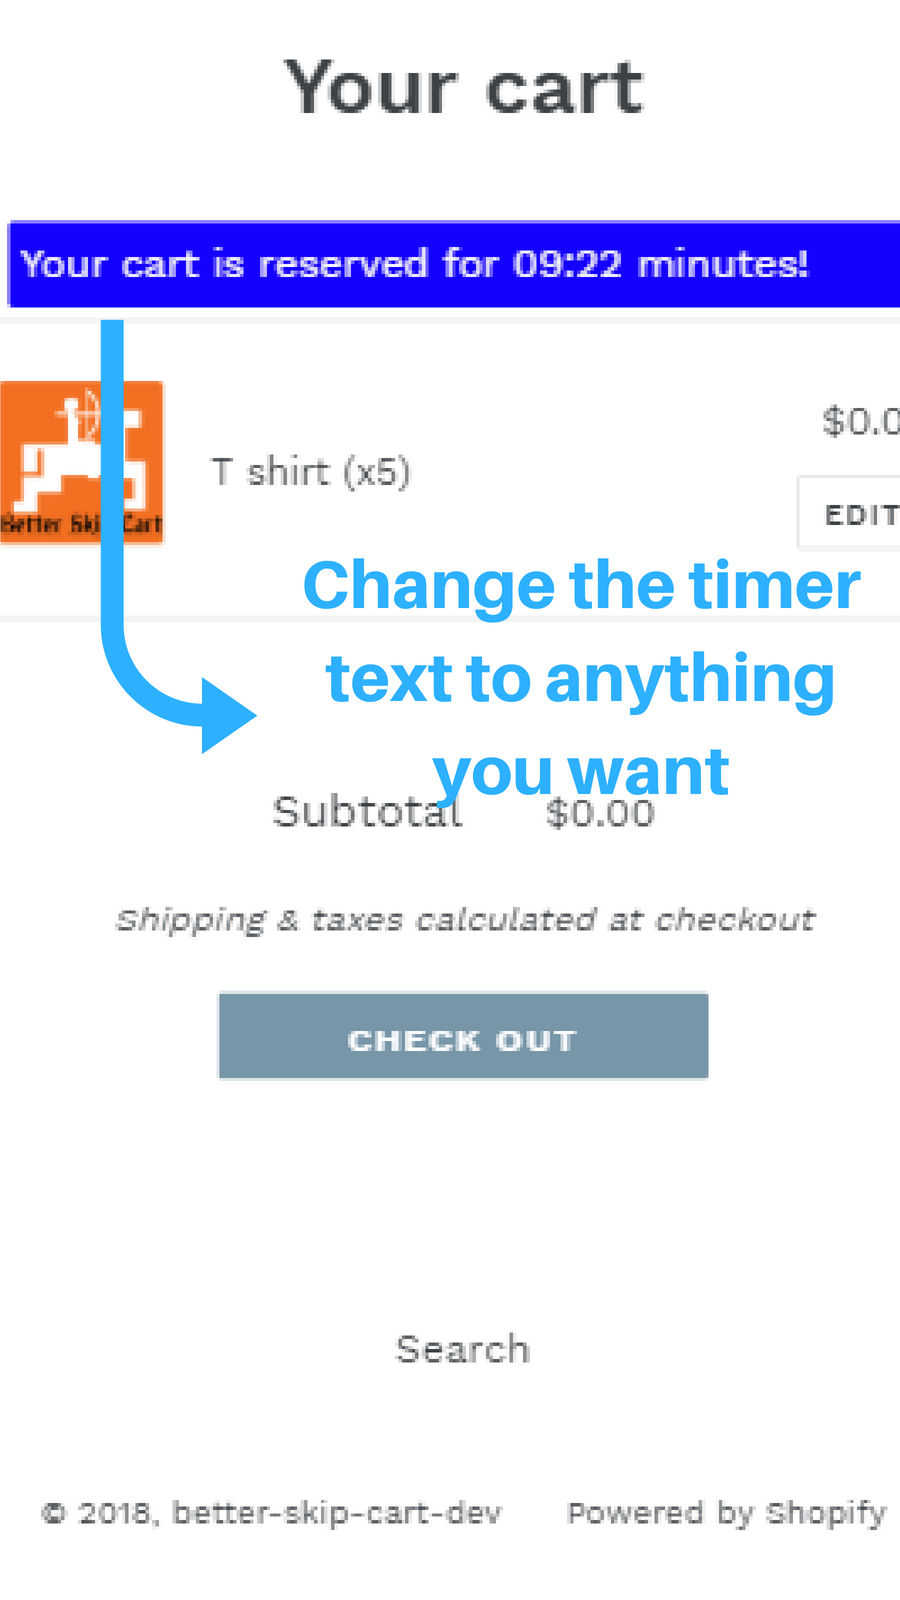 Change the timer text to anything you want